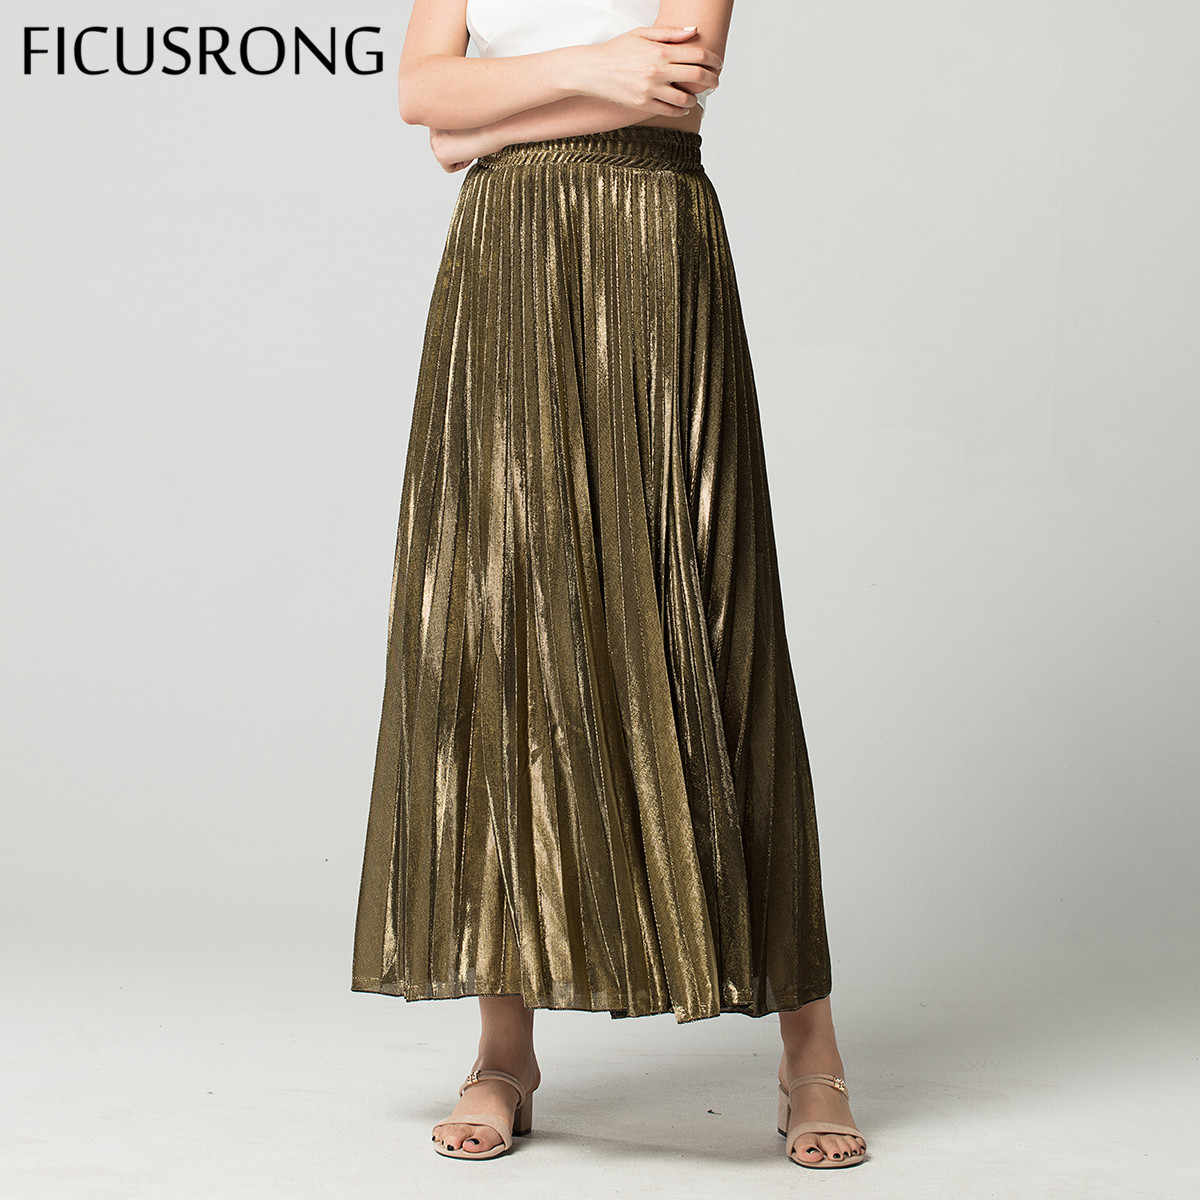 Spring Skirts Golden High Waist Slim Pleated Skirt Women's Simple Autumn A-line Skirt Streetwear Beach Skirt FICUSRONG